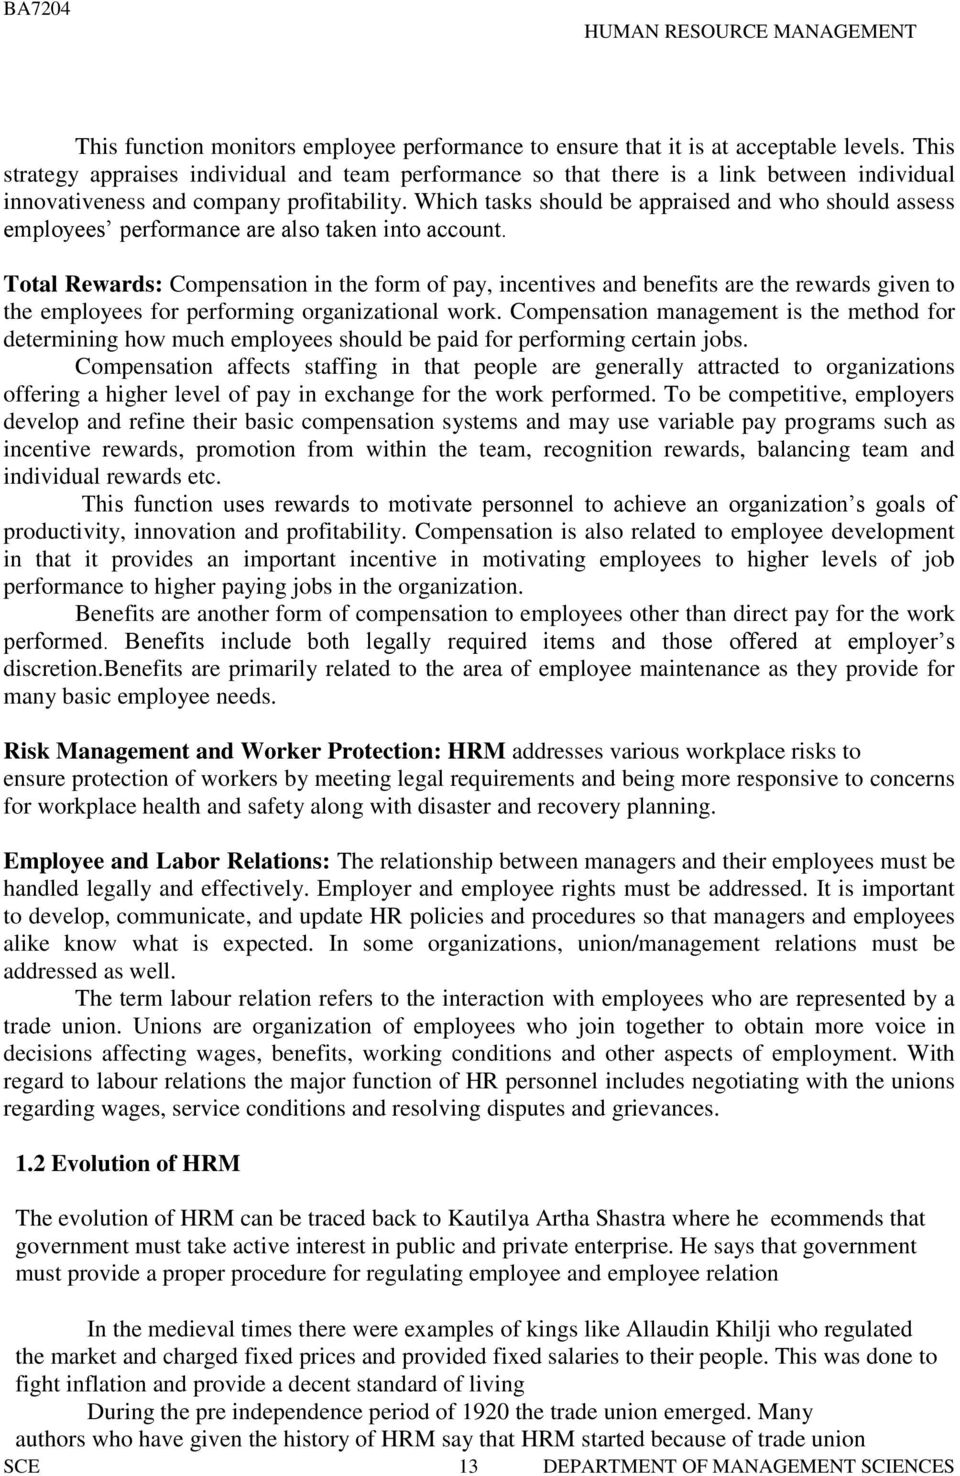 a course material on human resource management pdf which tasks should be appraised and who should assess employees performance are also taken into account